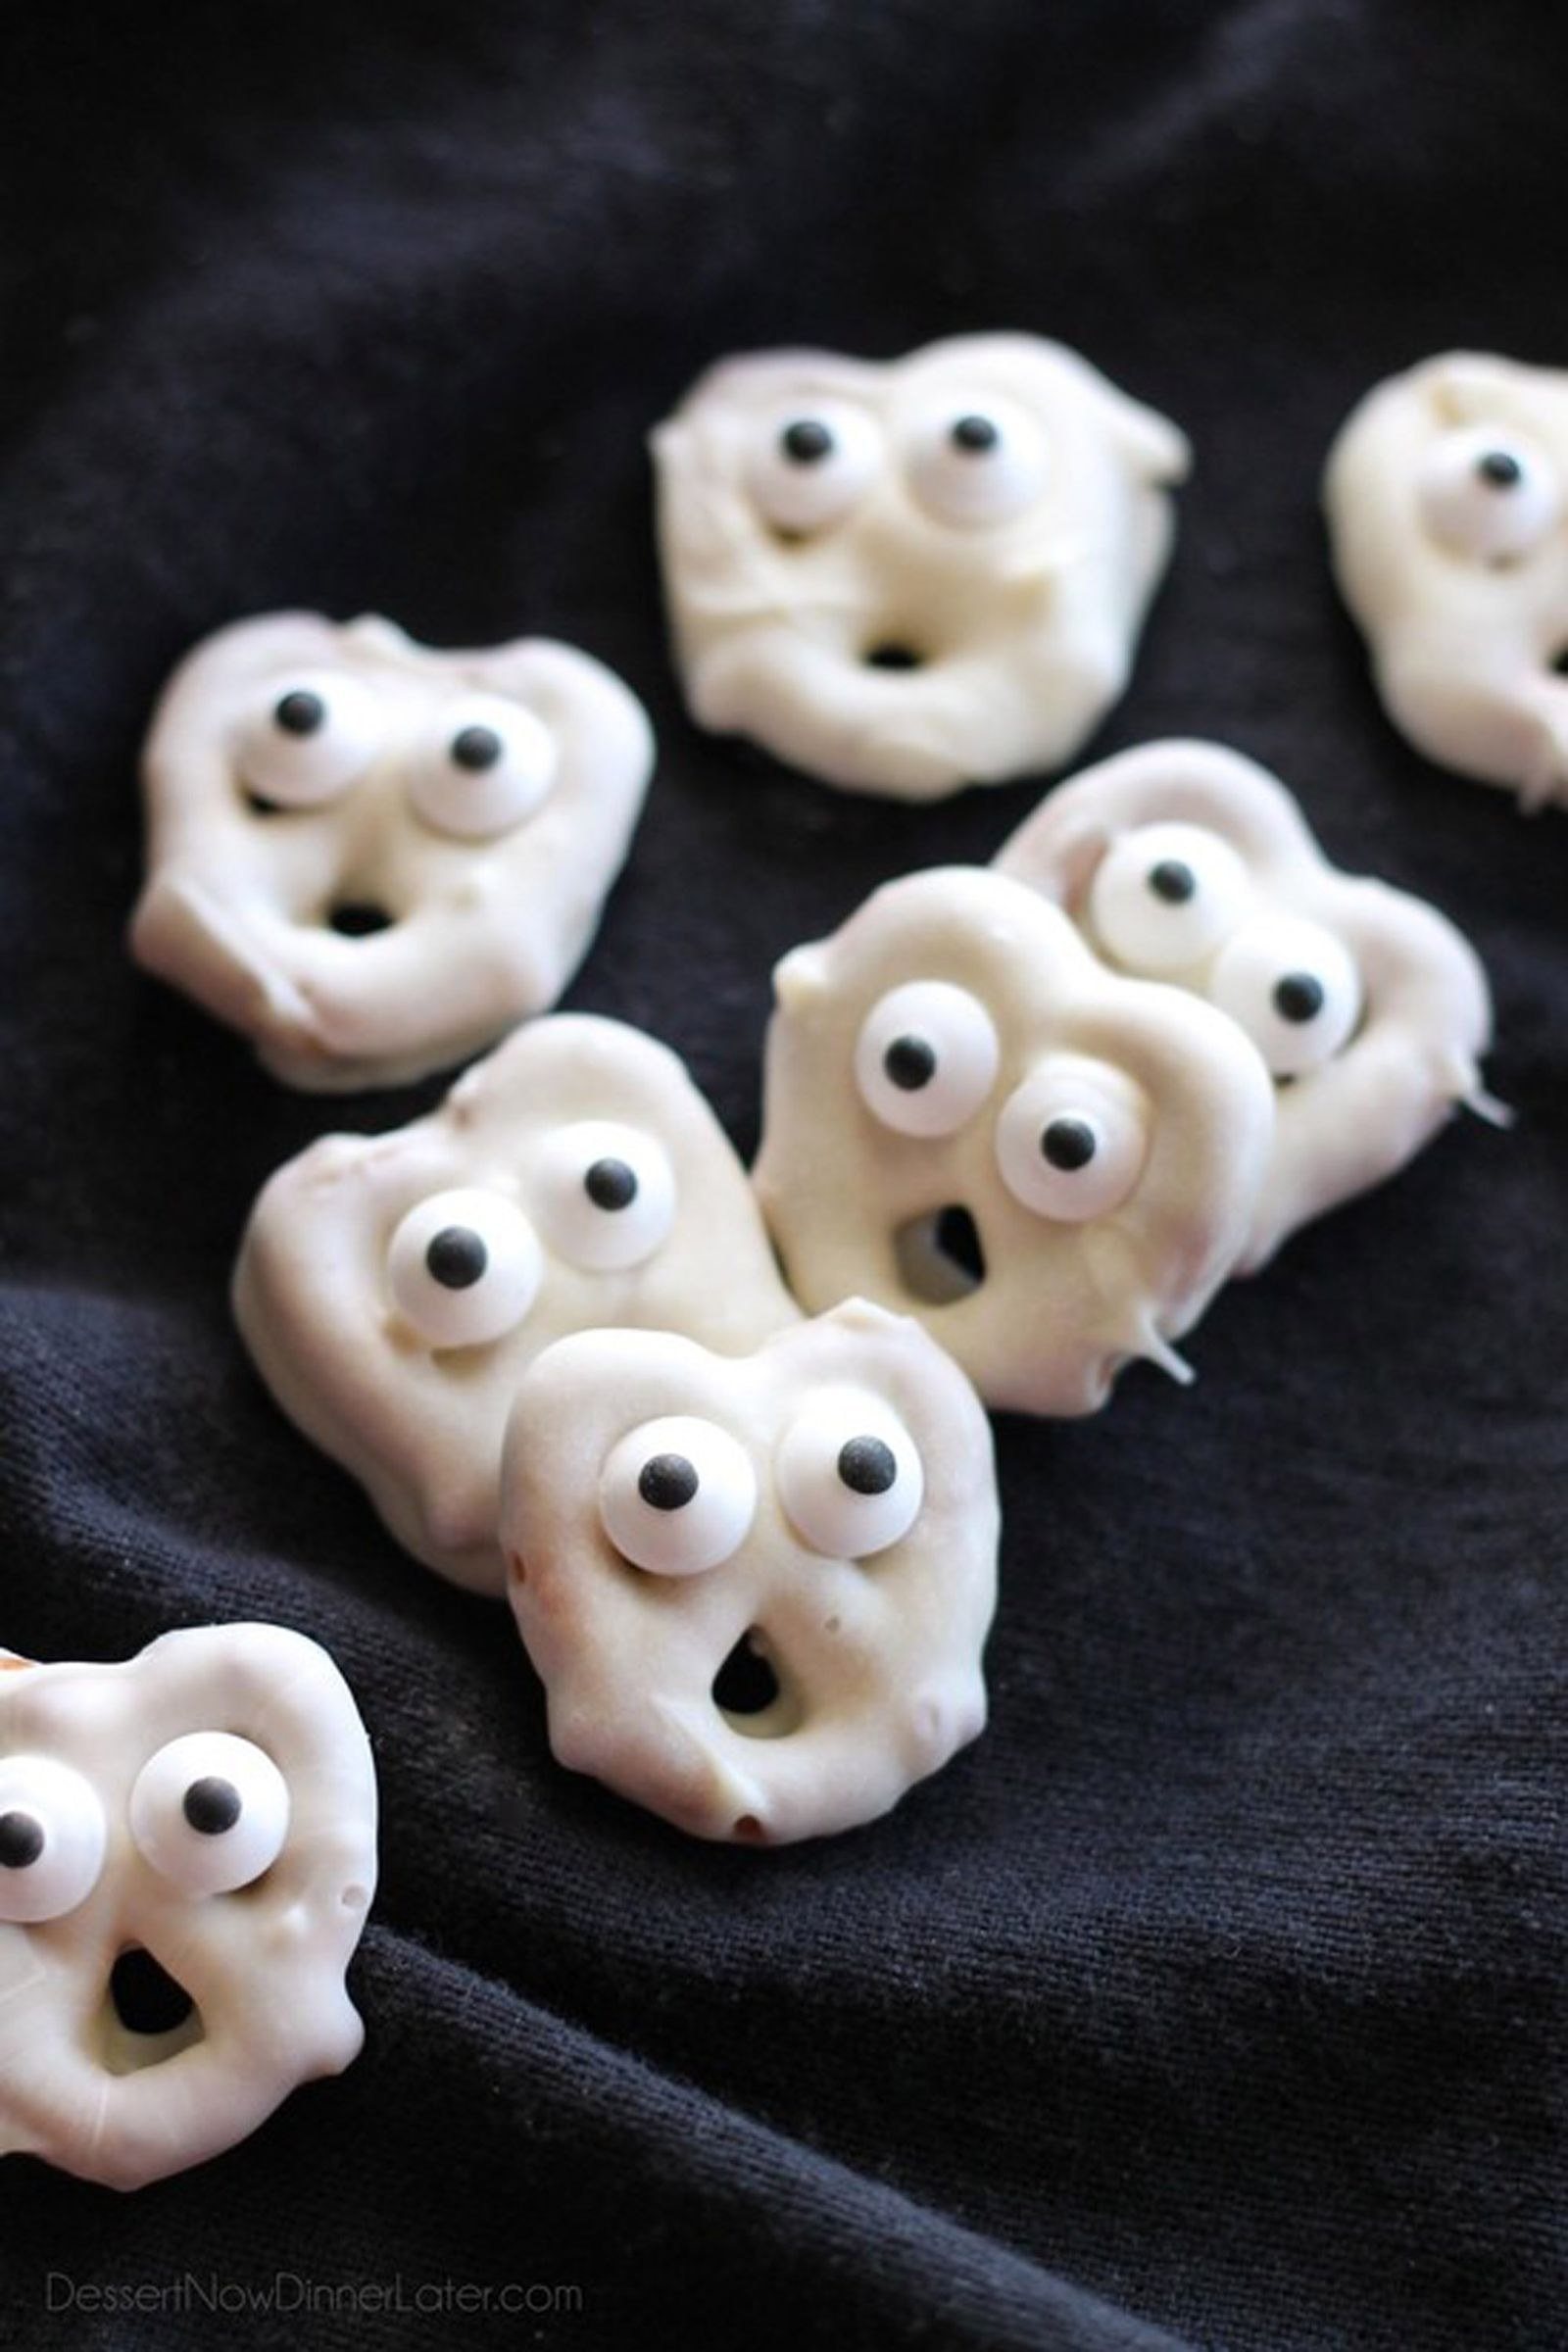 A handful of white-chocolate dipped pretzels with candy eyes.